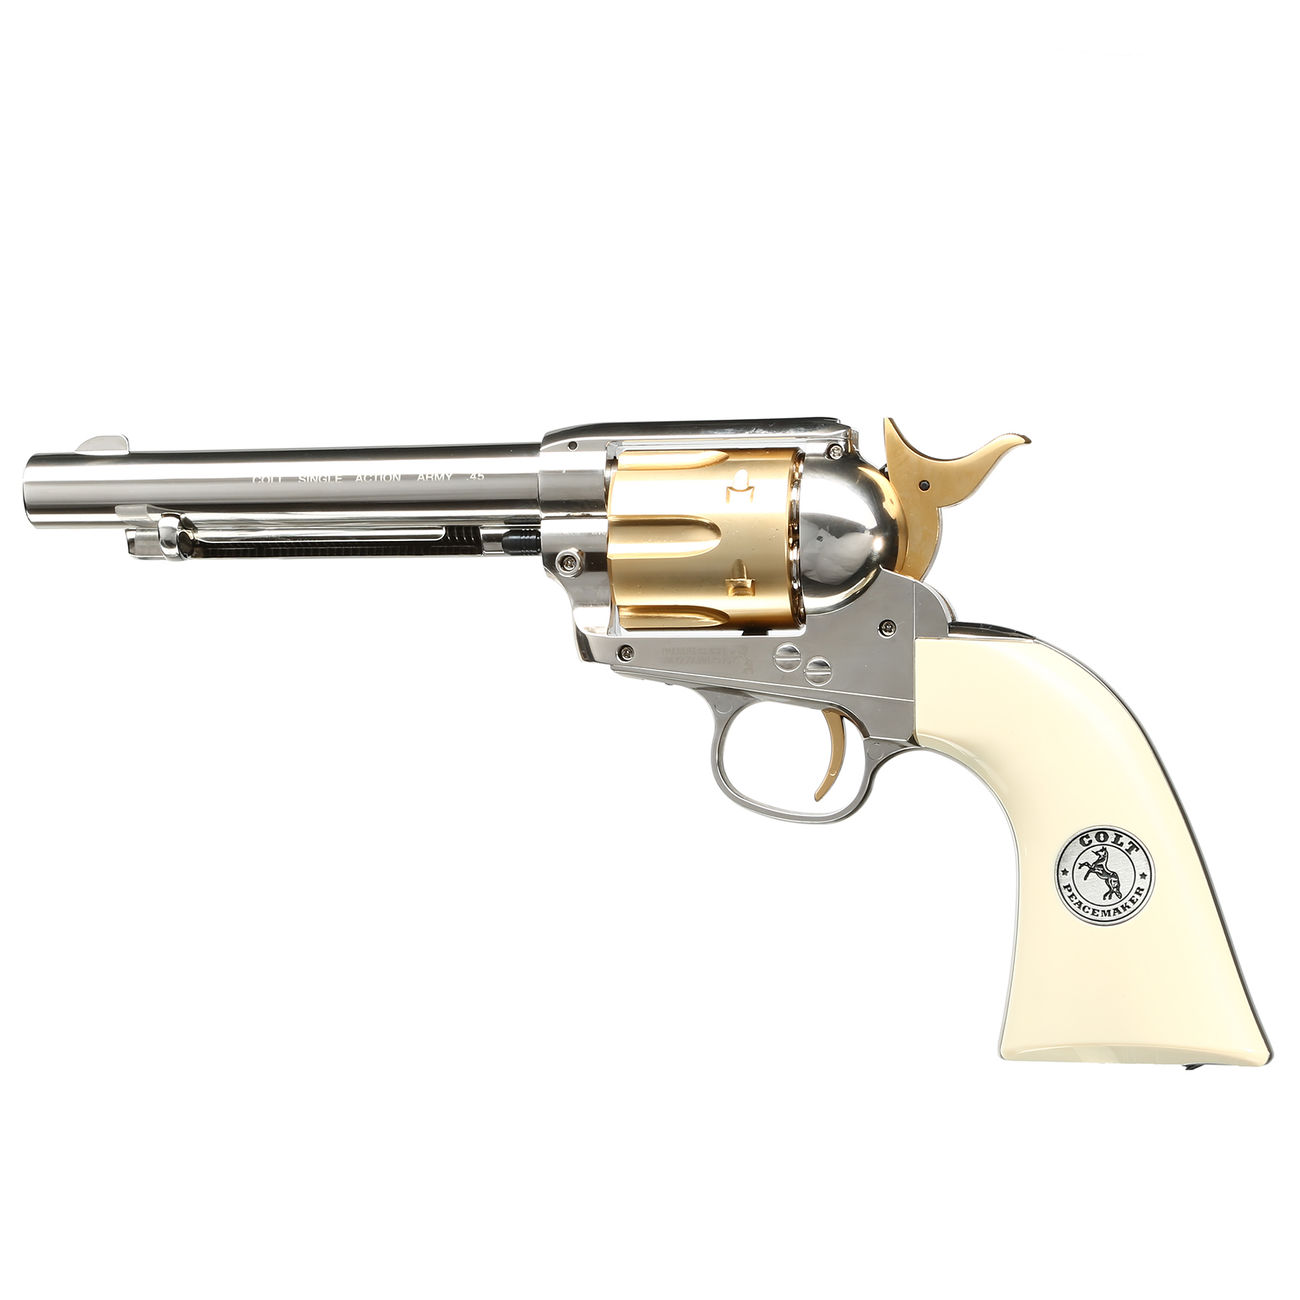 Colt Single Action Army 45 gold / nickel finish CO2 Revolver Kal. 4,5mm Diabolo gezogener Lauf 0